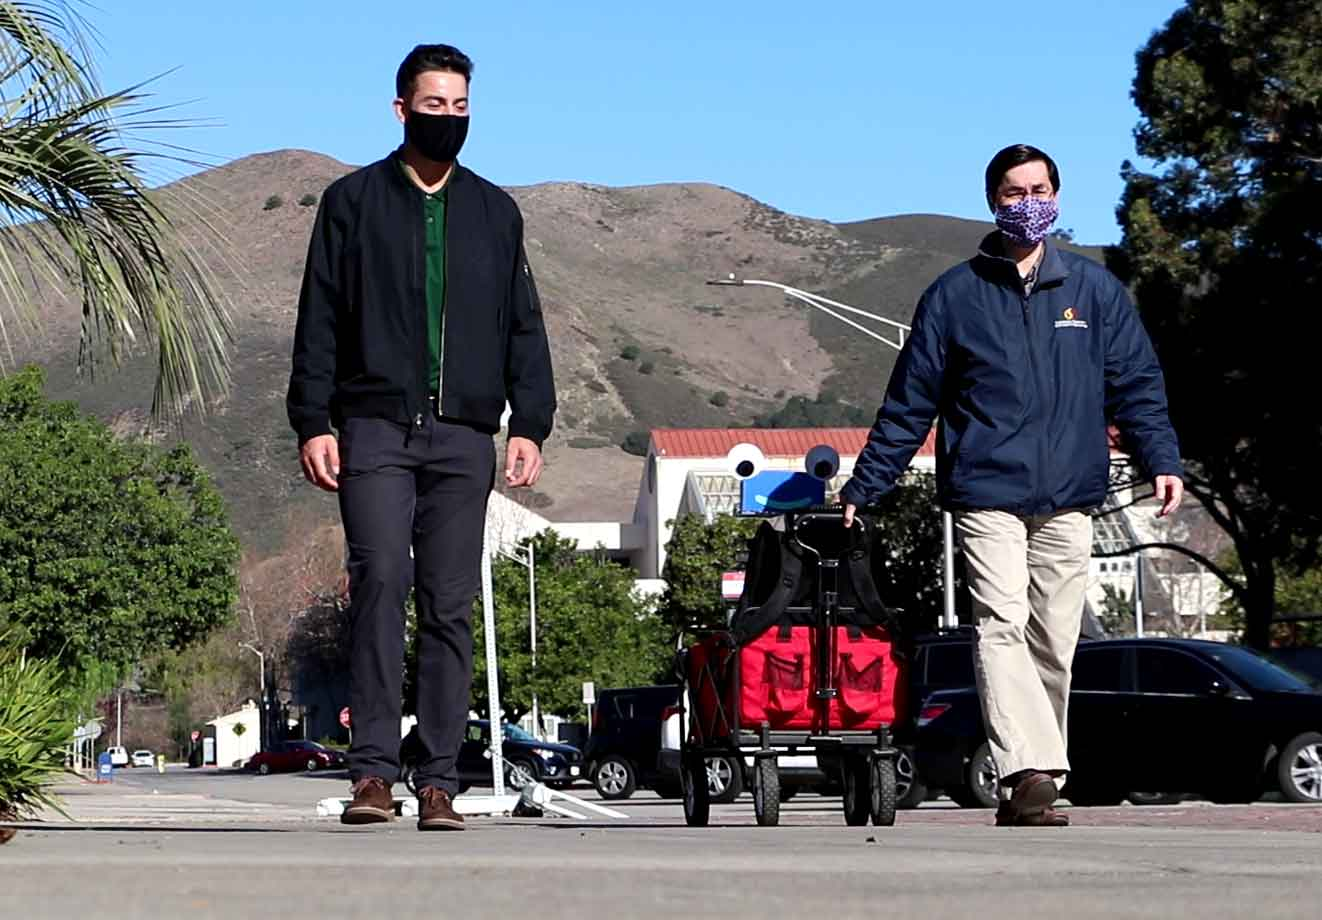 John Seng, right, walks with former student Daniel Jones, now an engineer for Aruba, a Hewlett Packard Enterprise Co. in Roseville, California, with Herbie, a robot Seng created. Seng will use a parallel computing lab, upgraded by HPE, to enhance Herbie's skills.